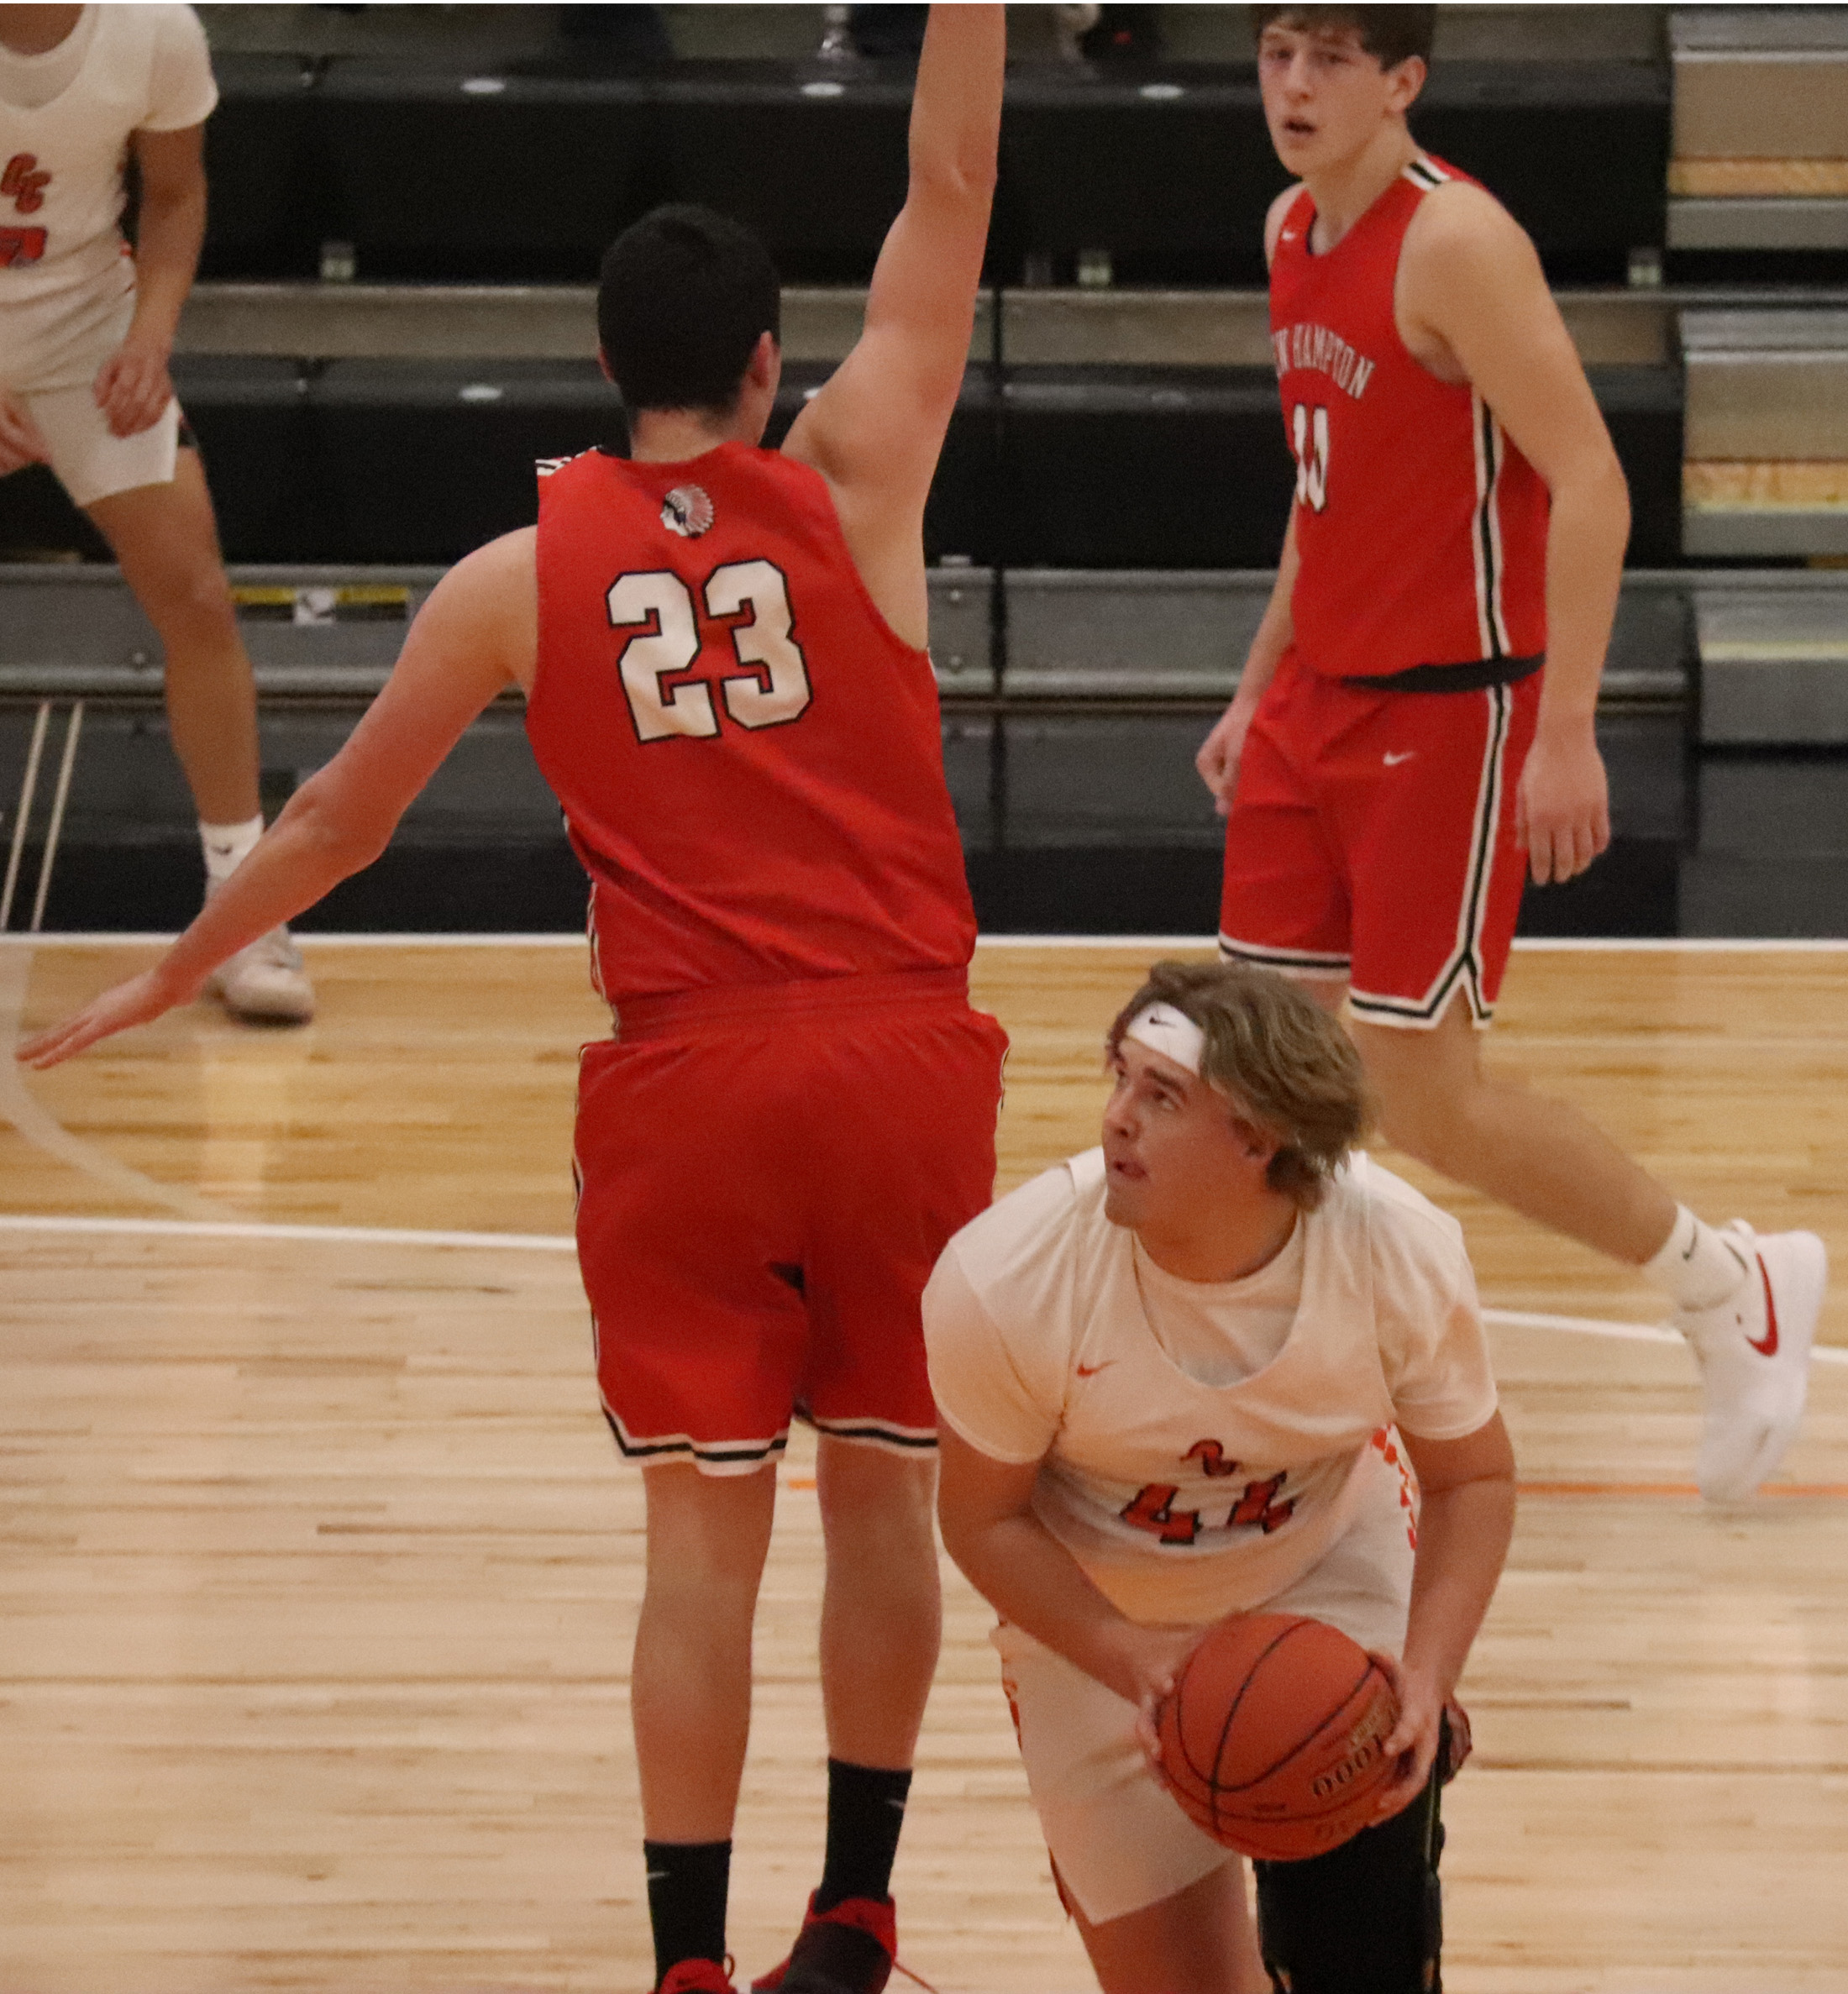 Fast start, strong finish lead Comets past Chickasaws 79-50